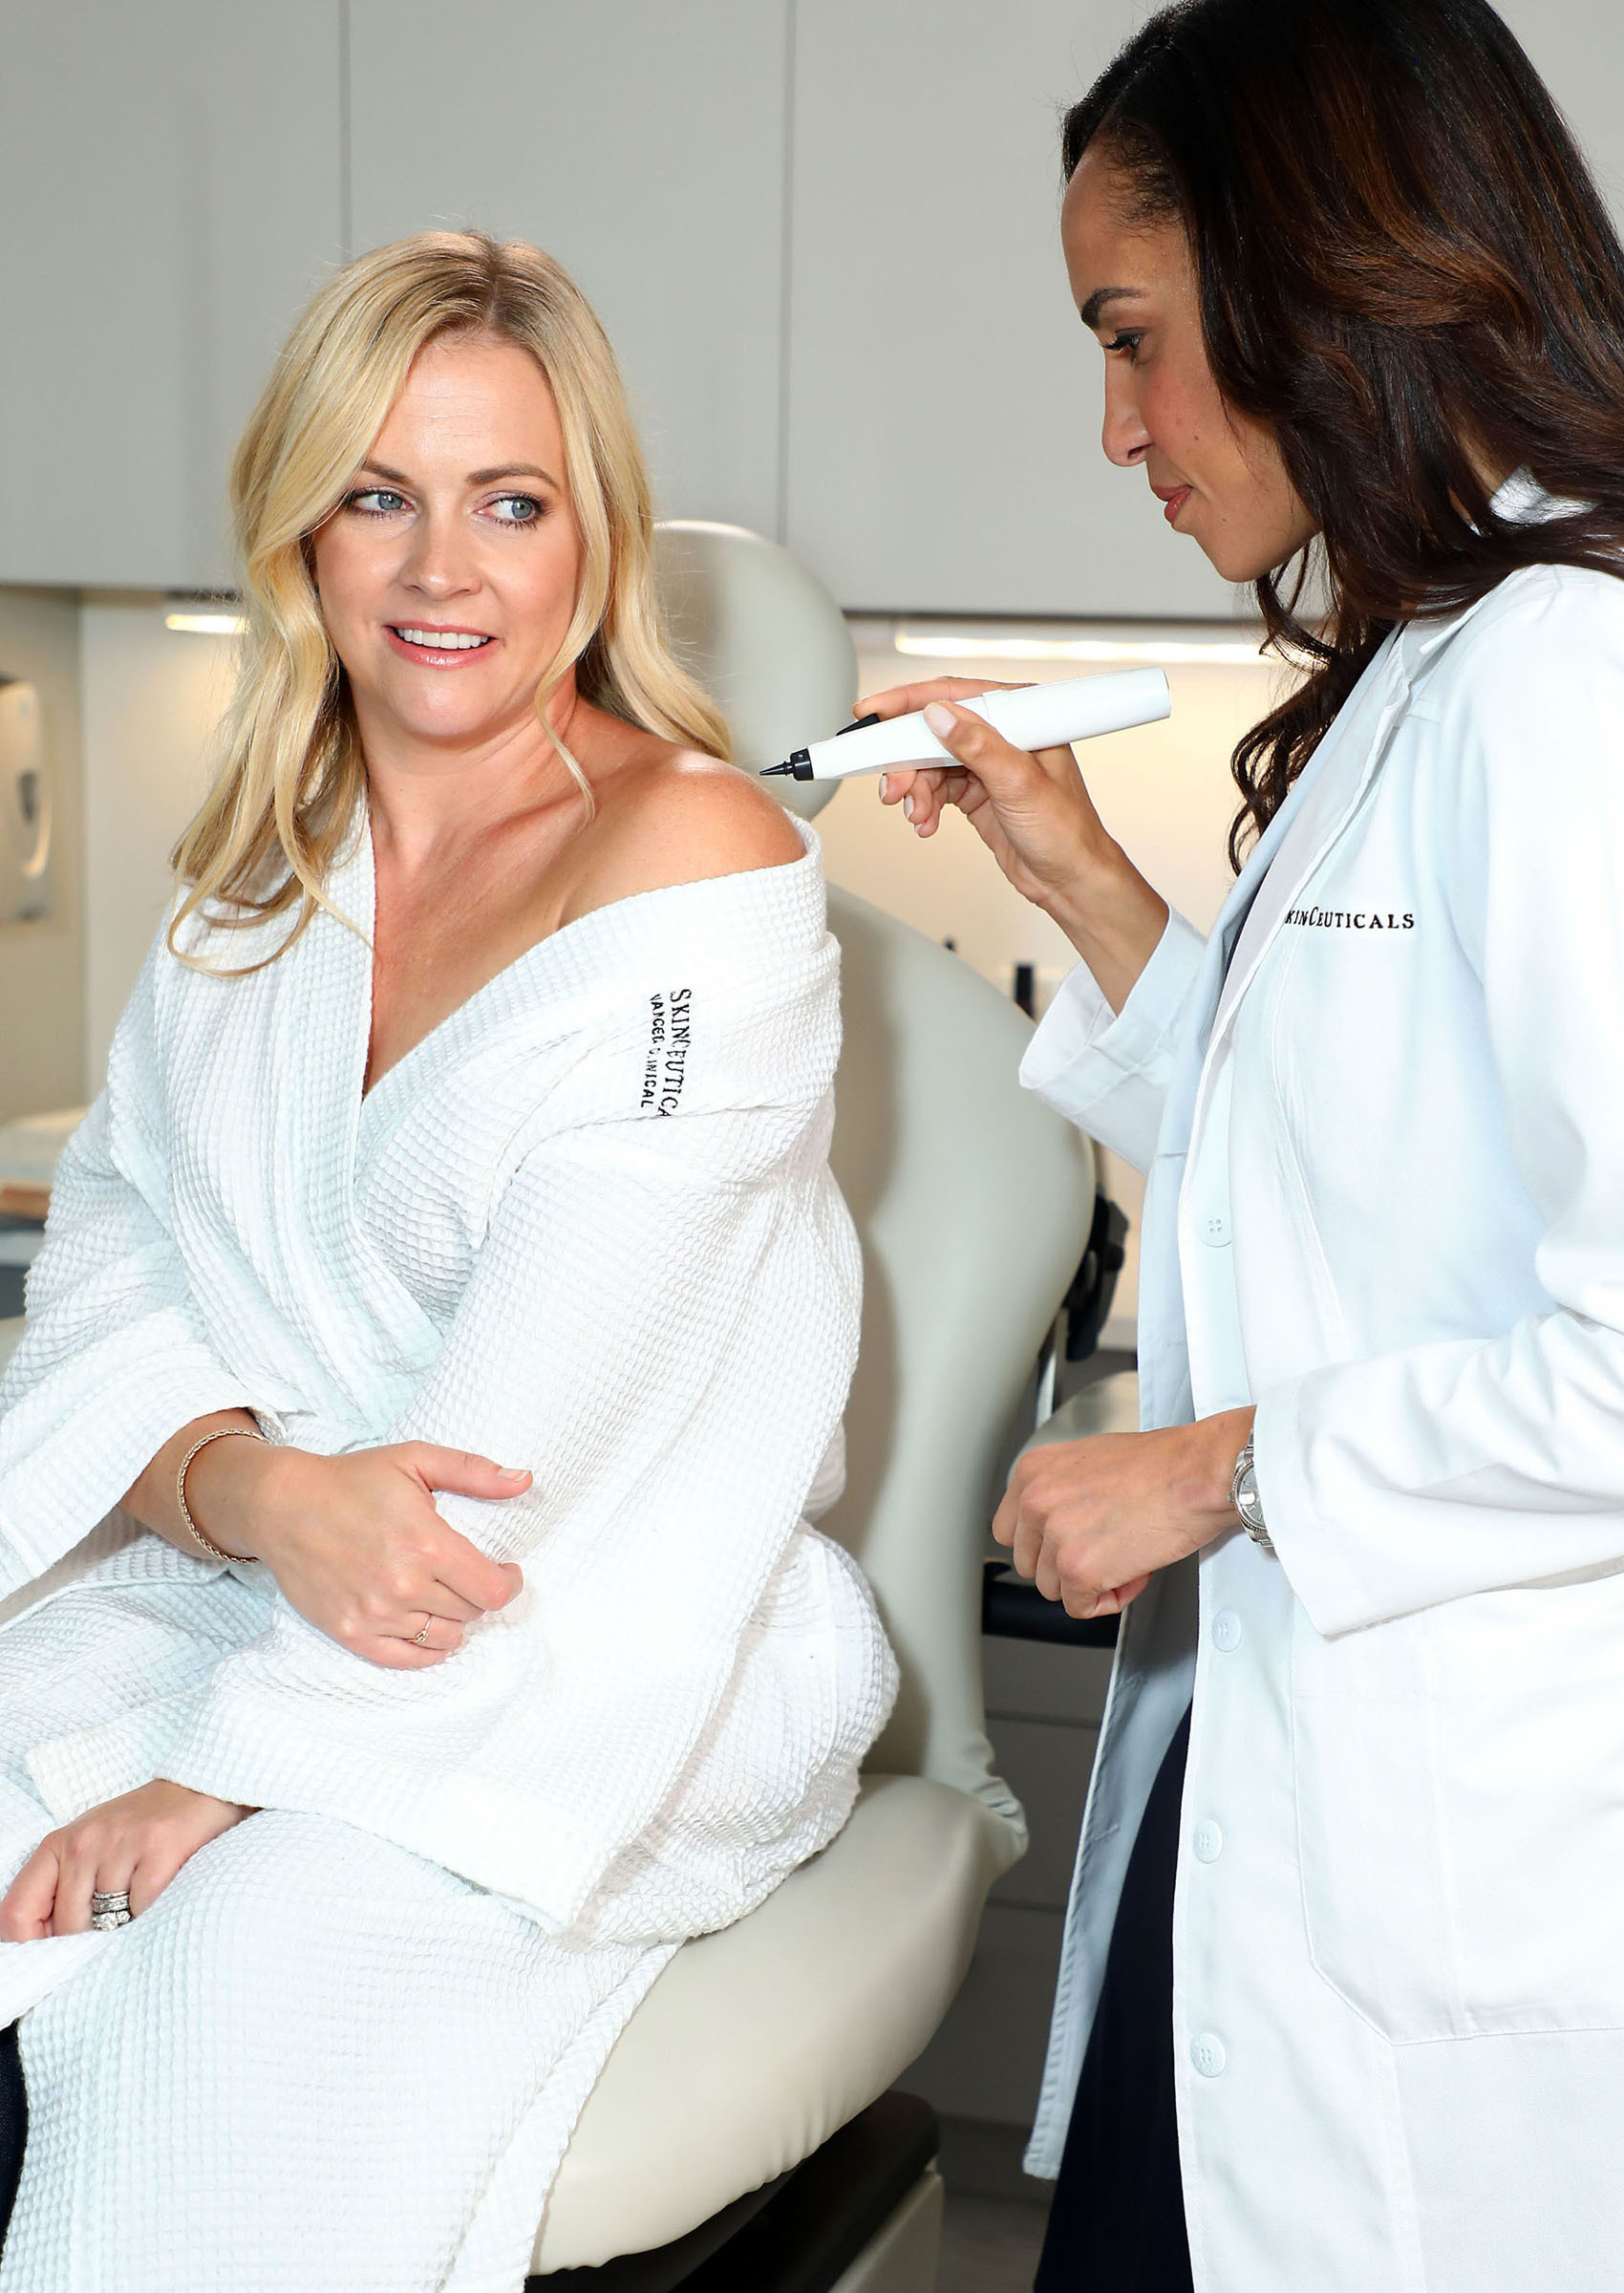 Melissa Joan Hart gets her unwanted dark spots removed with the new CryoCorrect Treatment from SkinCeuticals at the NicholsMD dermatology practice with Dr. Kim Nichols in Greenwich, Connecticut, on Aug. 30, 2017.